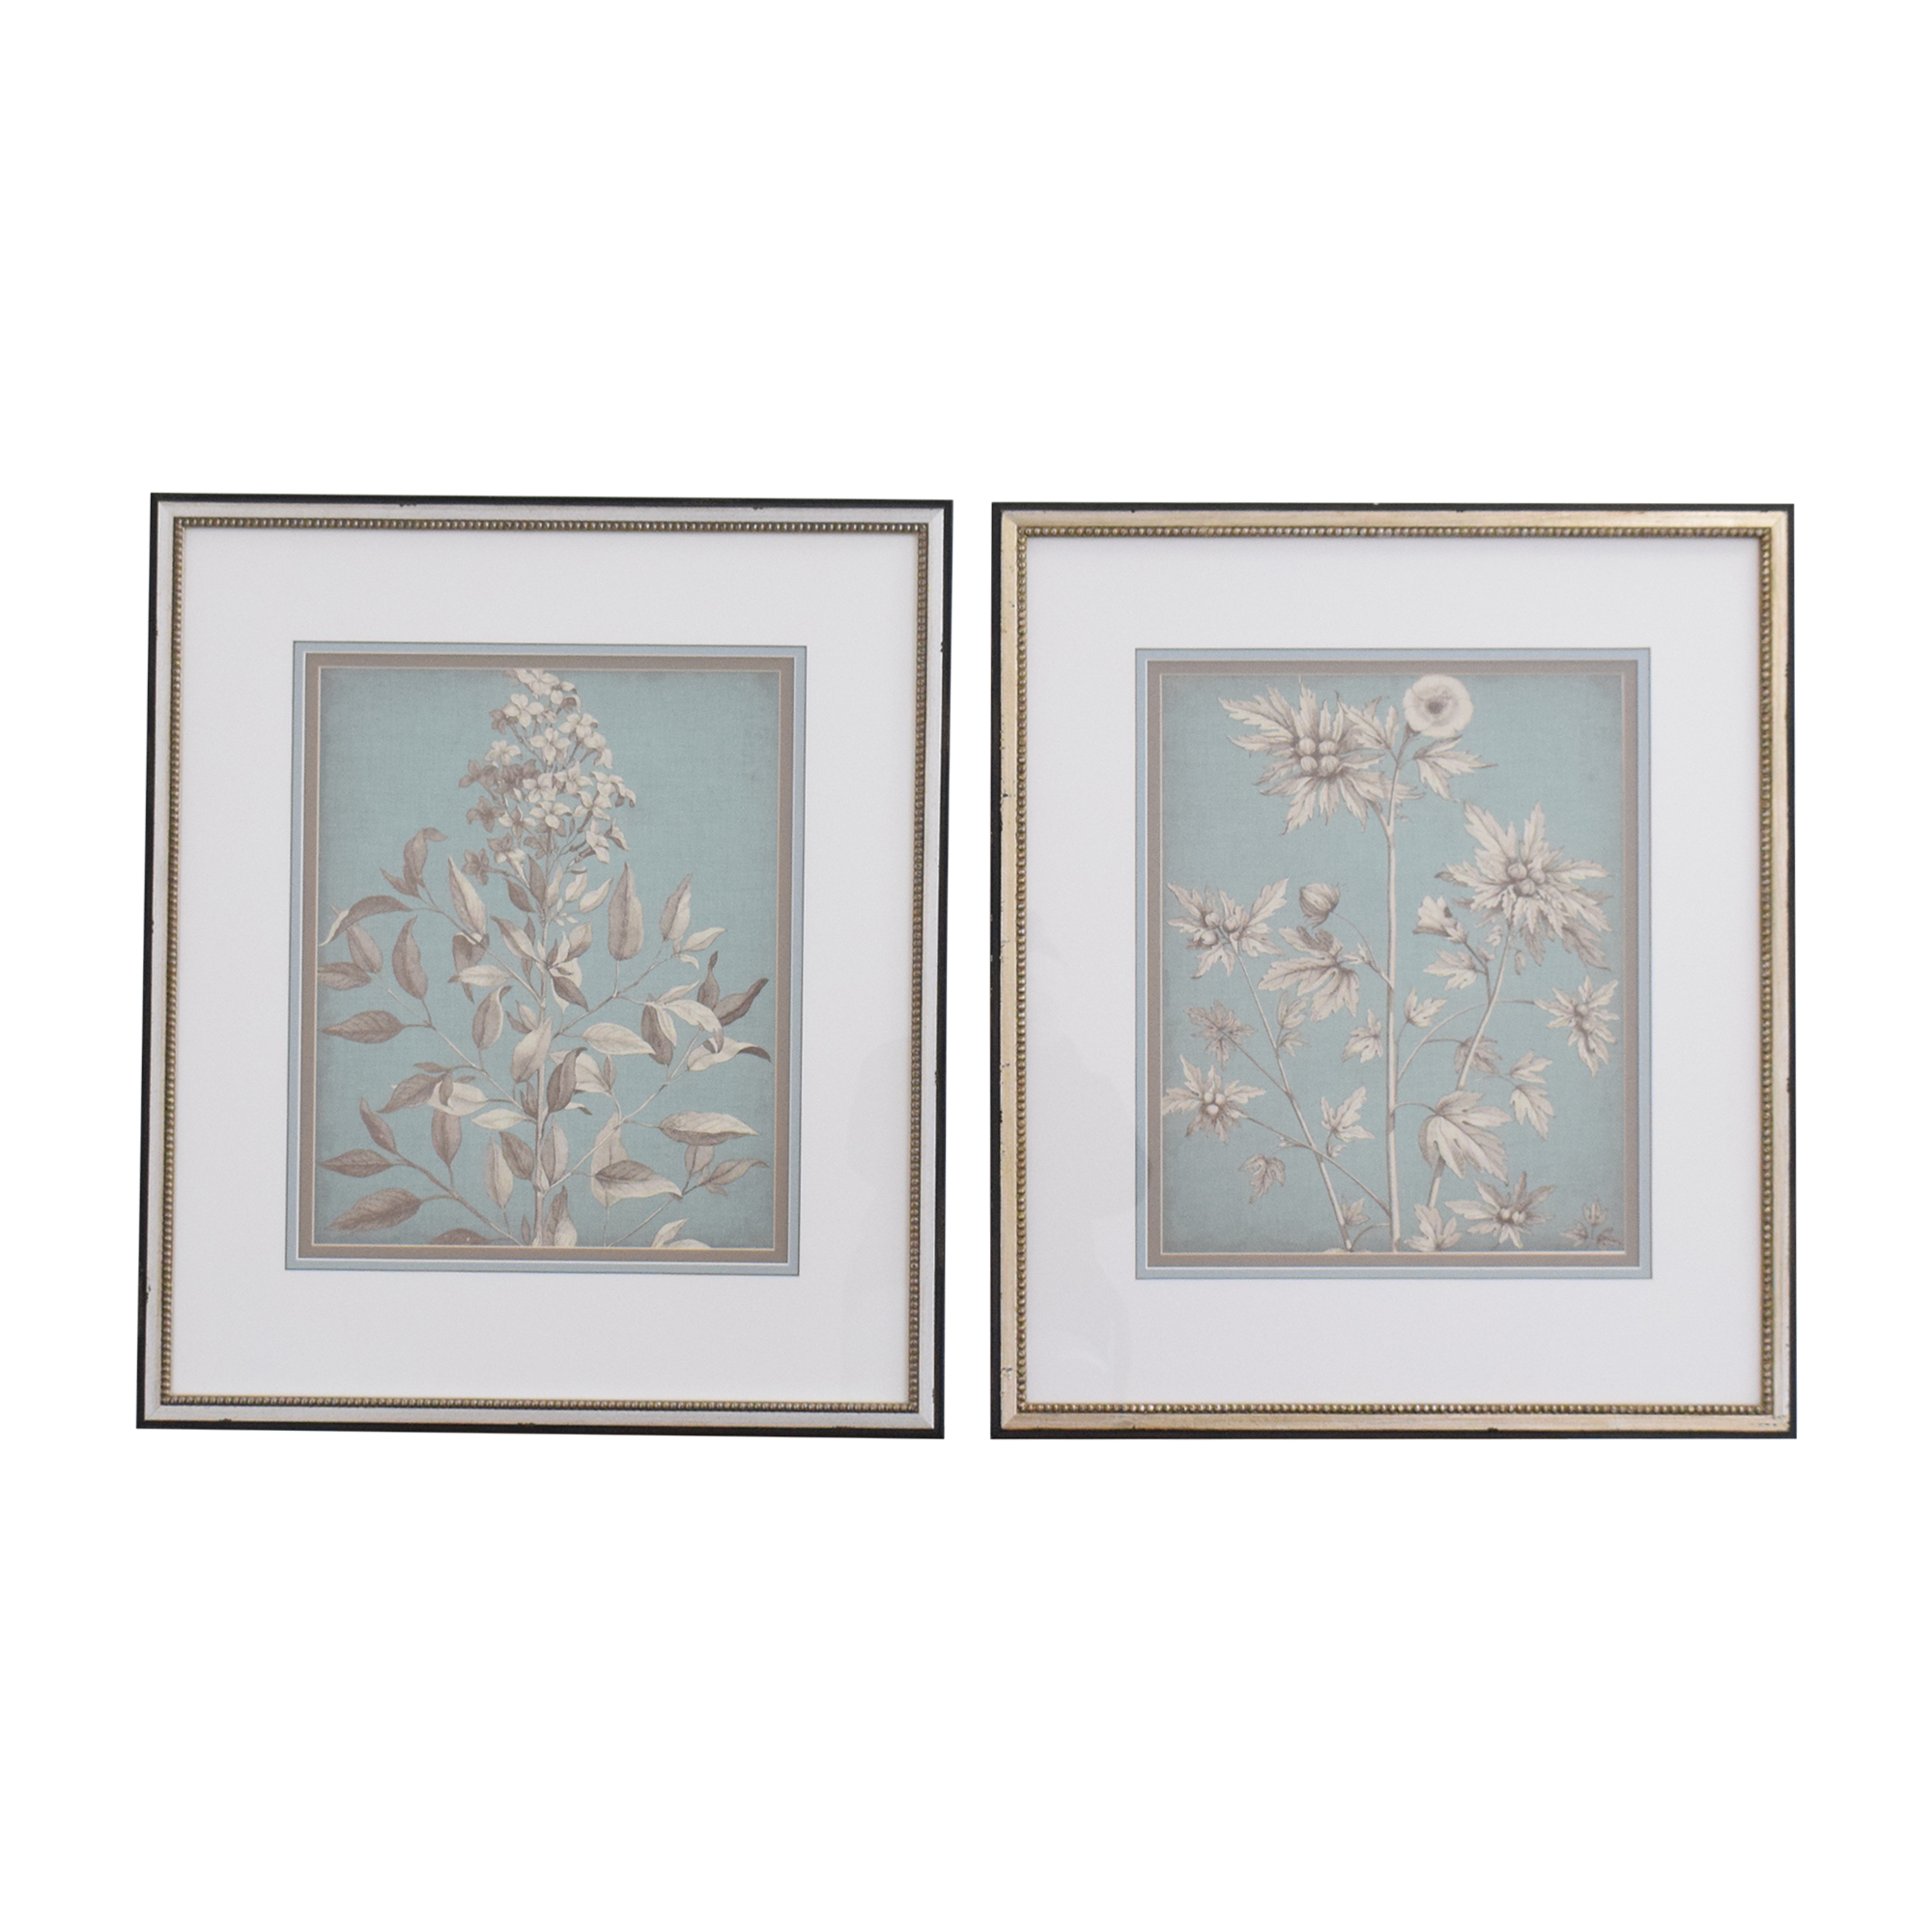 Ethan Allen Ethan Allen Pastel Chintz Collection Wall Art used